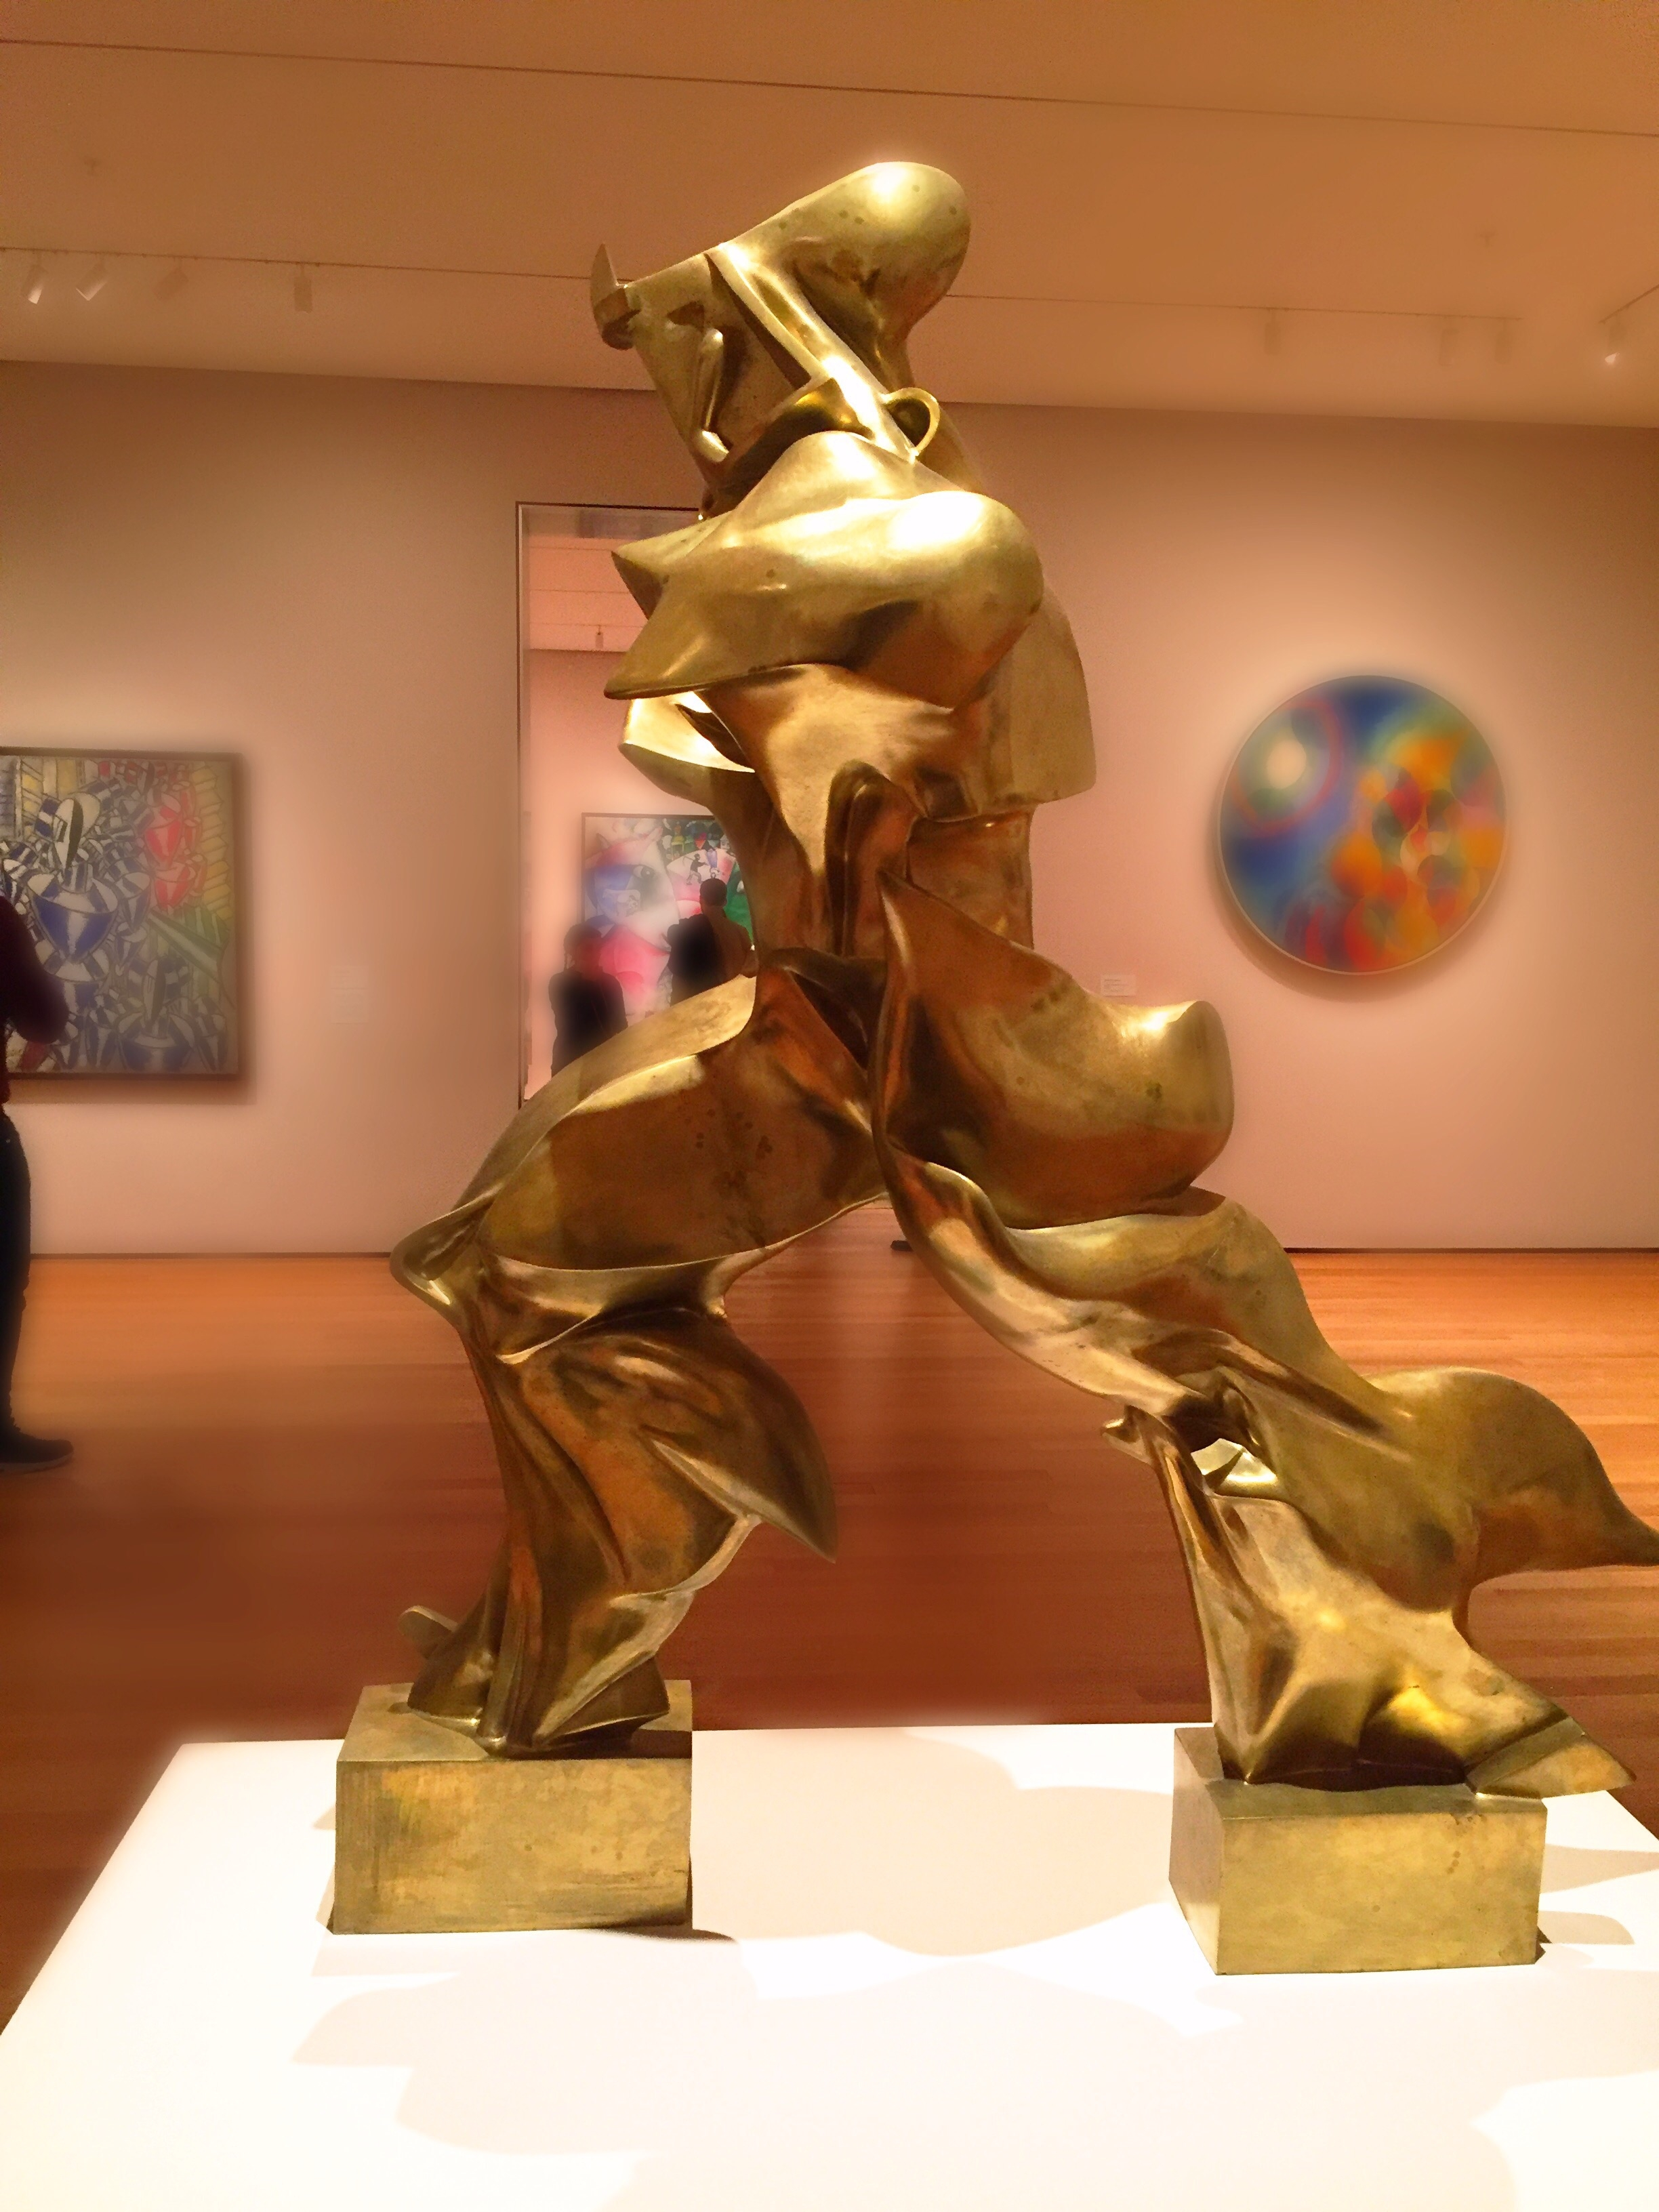 unique forms of continuity in space by umberto boccioni As the principal theorist for the movement, umberto boccioni promoted futurists' themes of movement, dynamism, speed, machine aesthetics, and simultaneity.